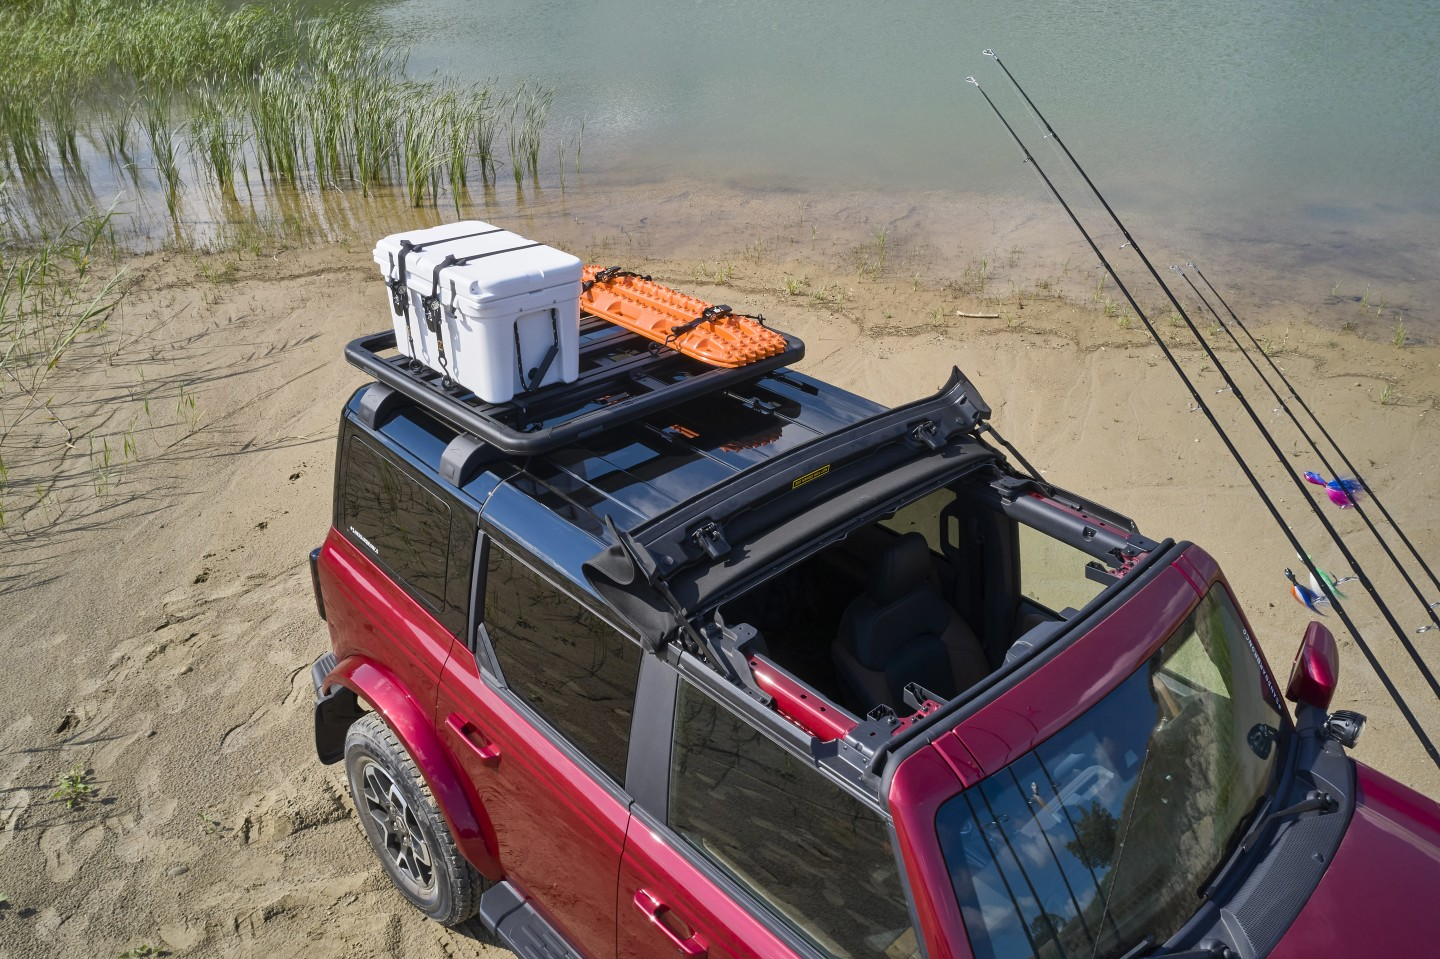 A look at the Outer Banks concept's Bestop Sunrider and compact Yakima platform rack